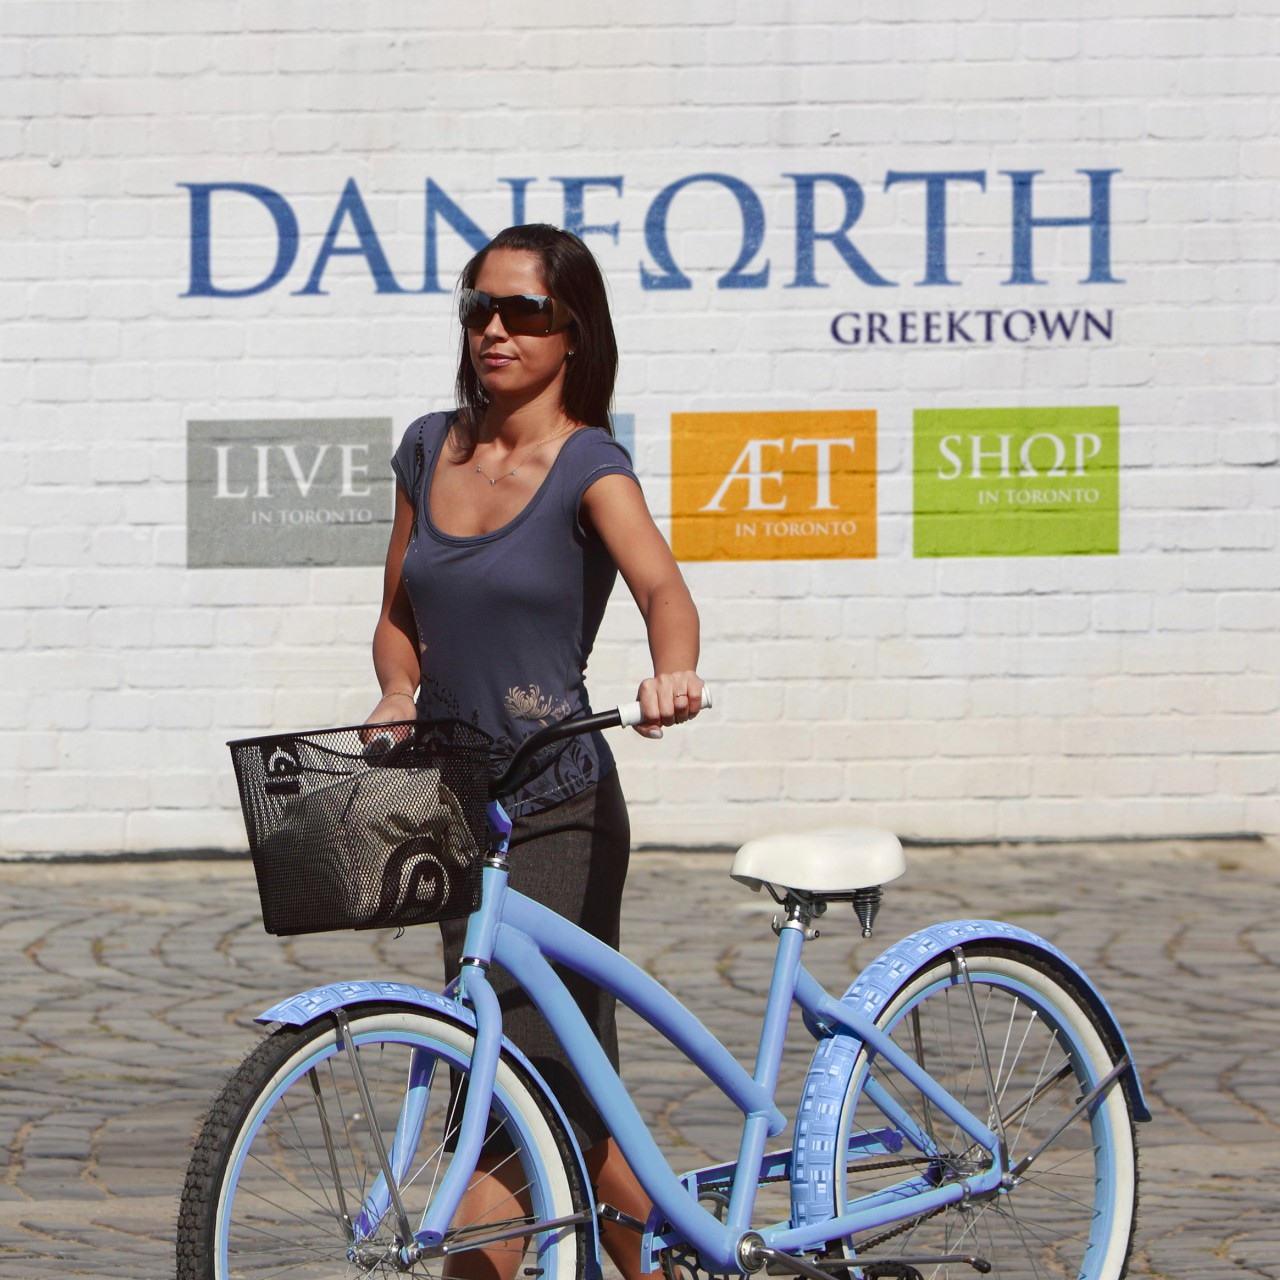 Image of Danforth Greektown logo application mockup